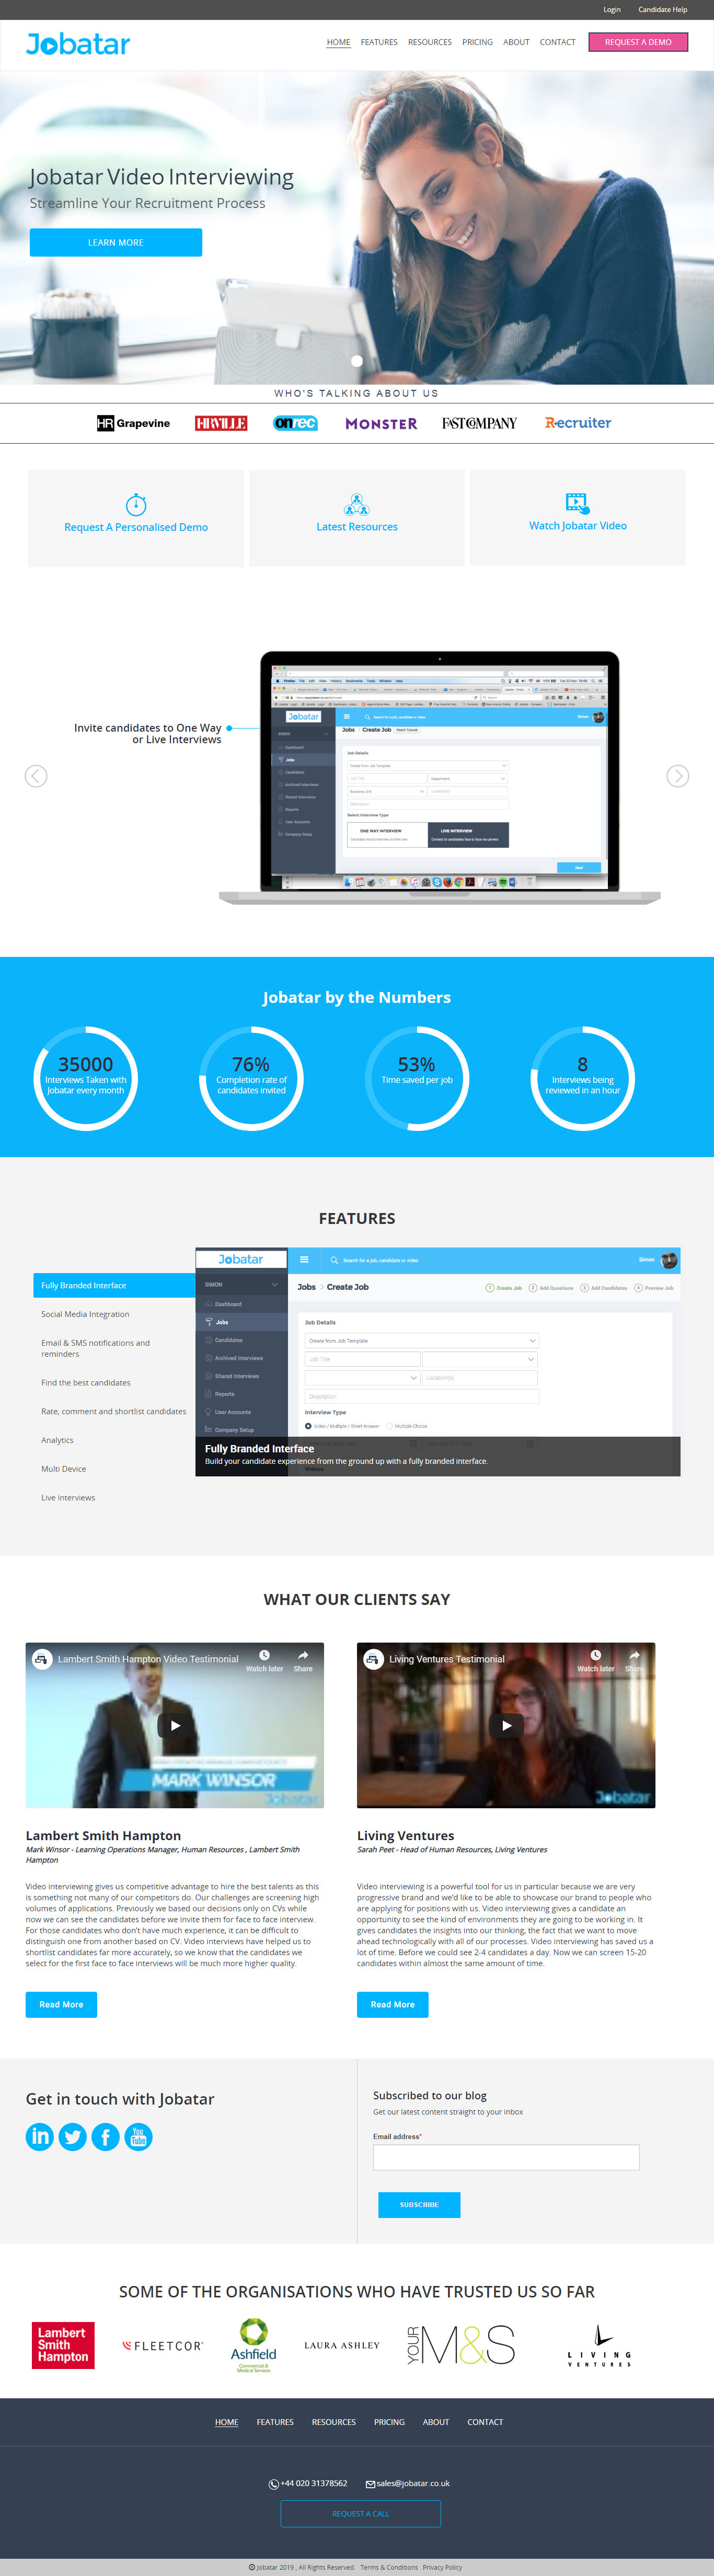 I will design or redesign wordpress website or any professional web design